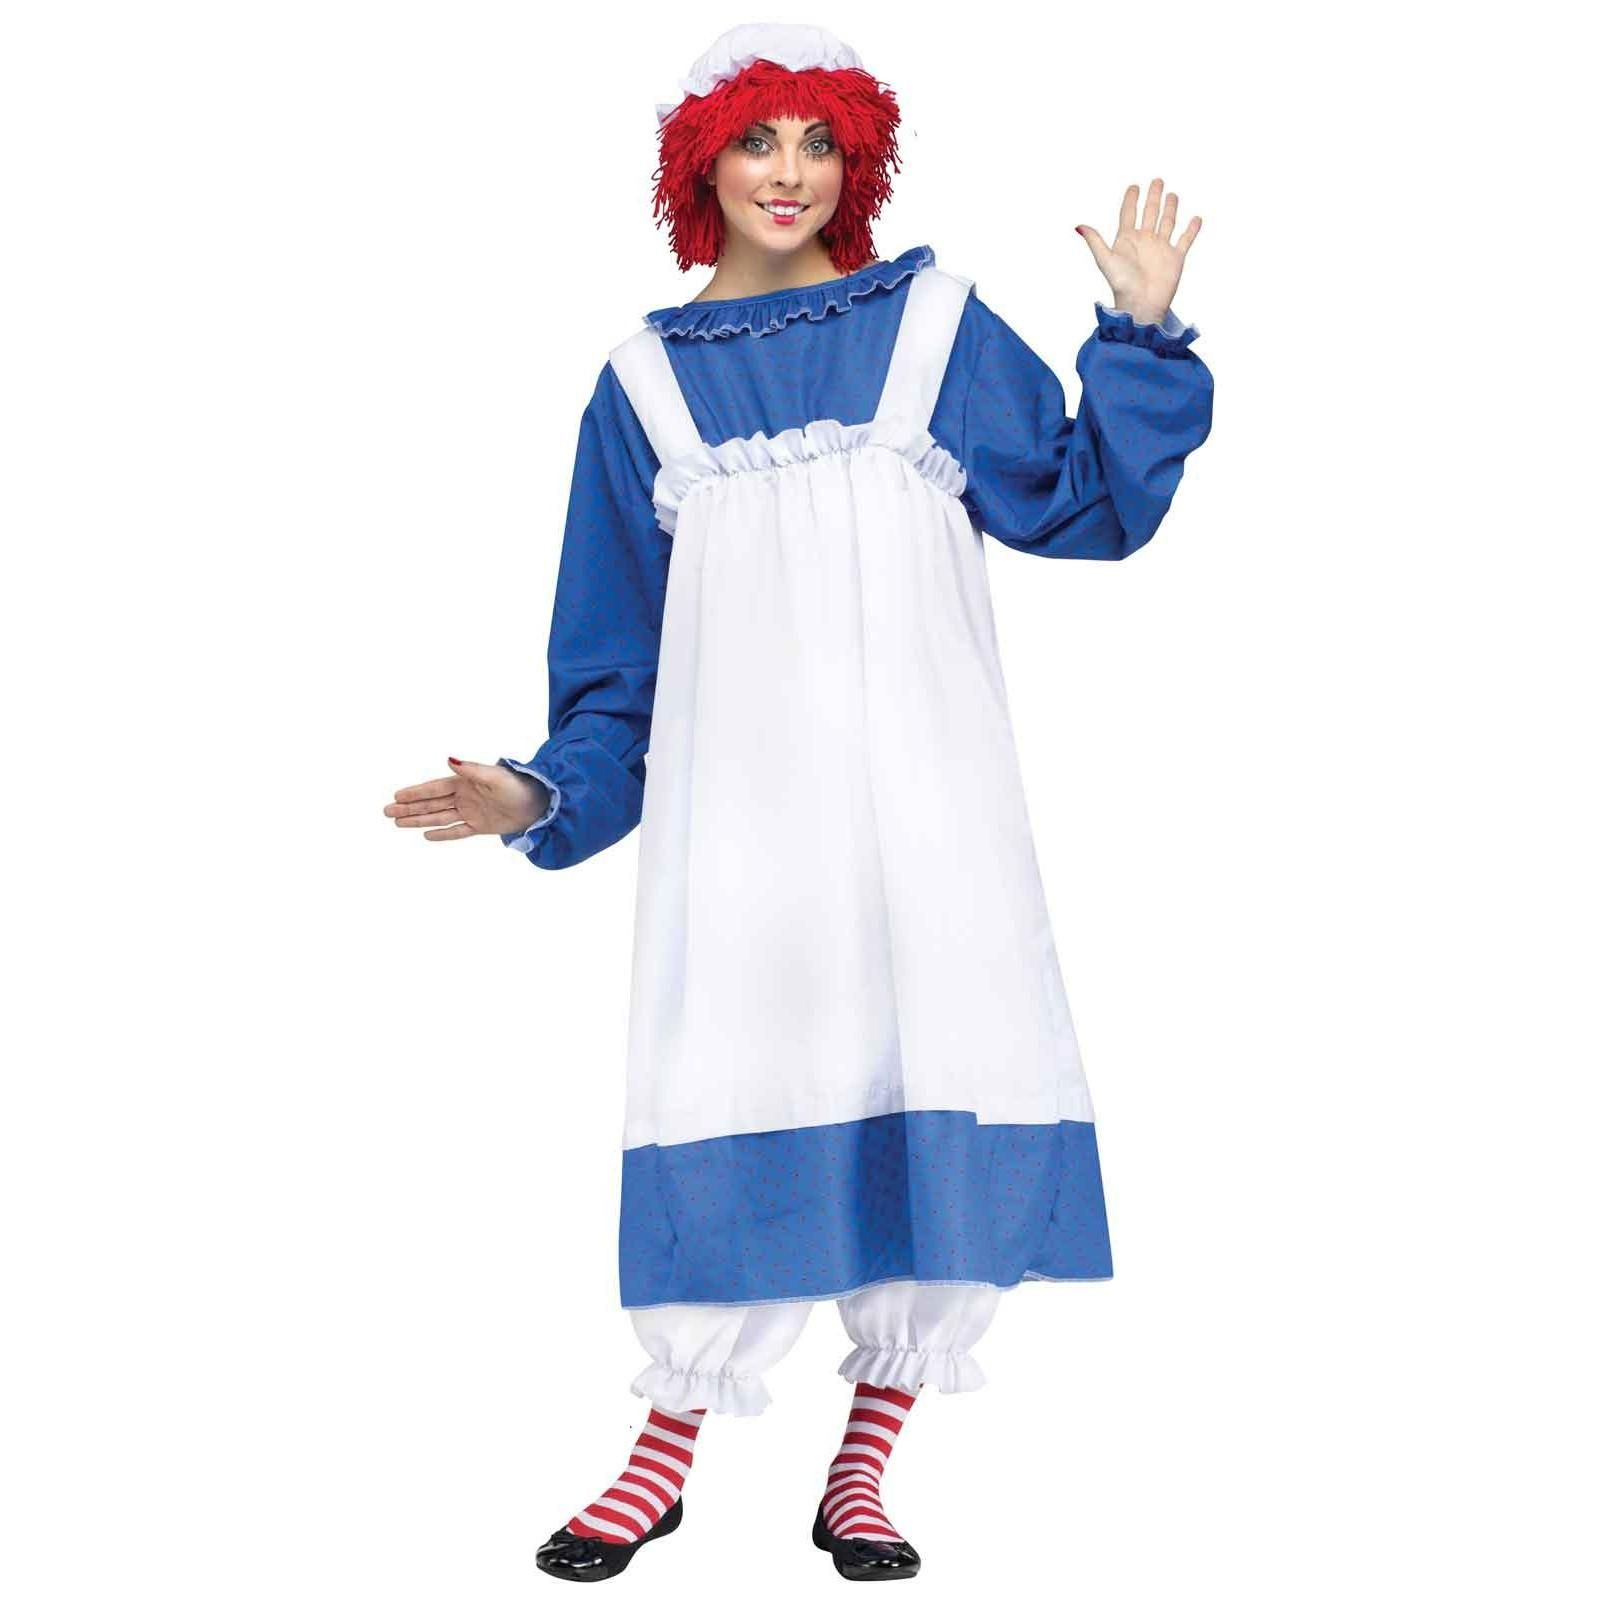 Raggedy Ann Adult Costume  sc 1 st  Pinterest & Raggedy Ann Adult Costume | costumes | Pinterest | Raggedy ann and ...